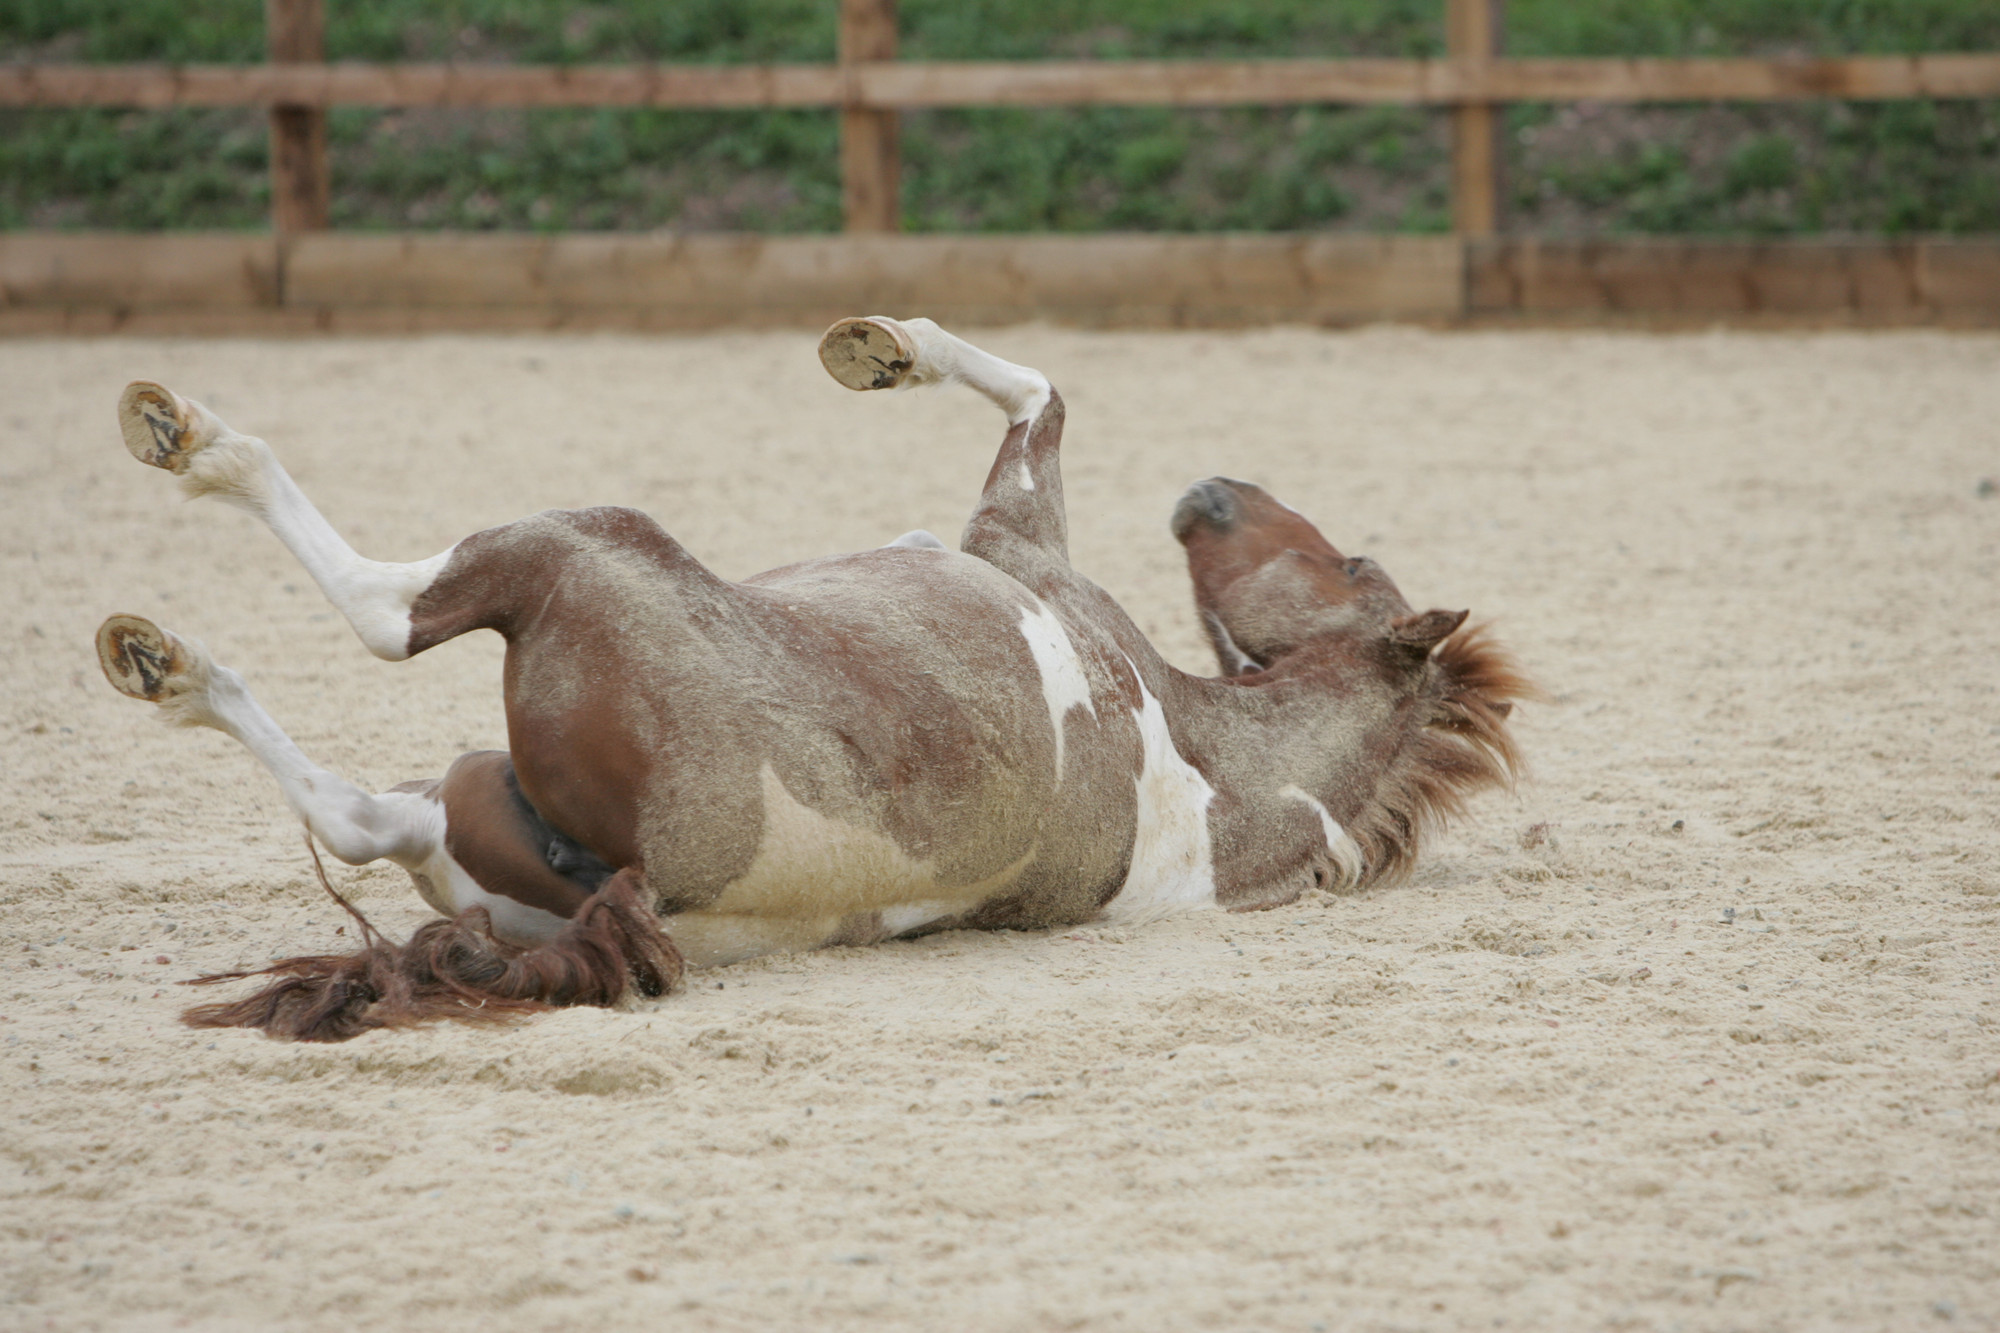 Horse colic prevention and management | Blue Cross